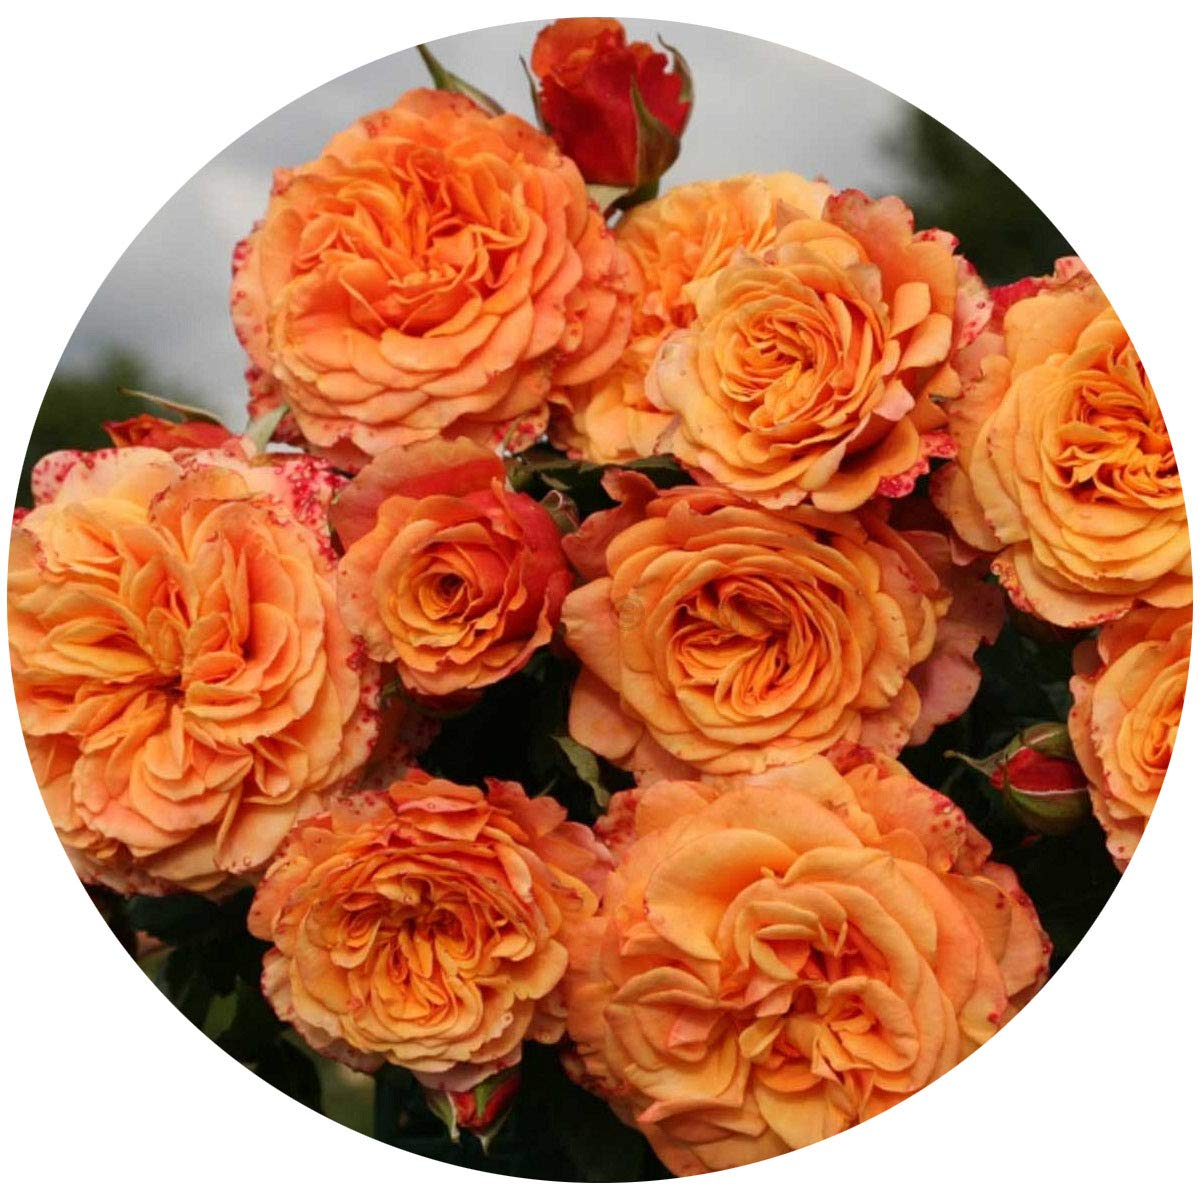 Crazy Love Rose Bush Reblooming Sunbelt Rose - Double Apricot Orange Flowers - Heat Resistant Grown Organic Potted - Stargazer Perennials